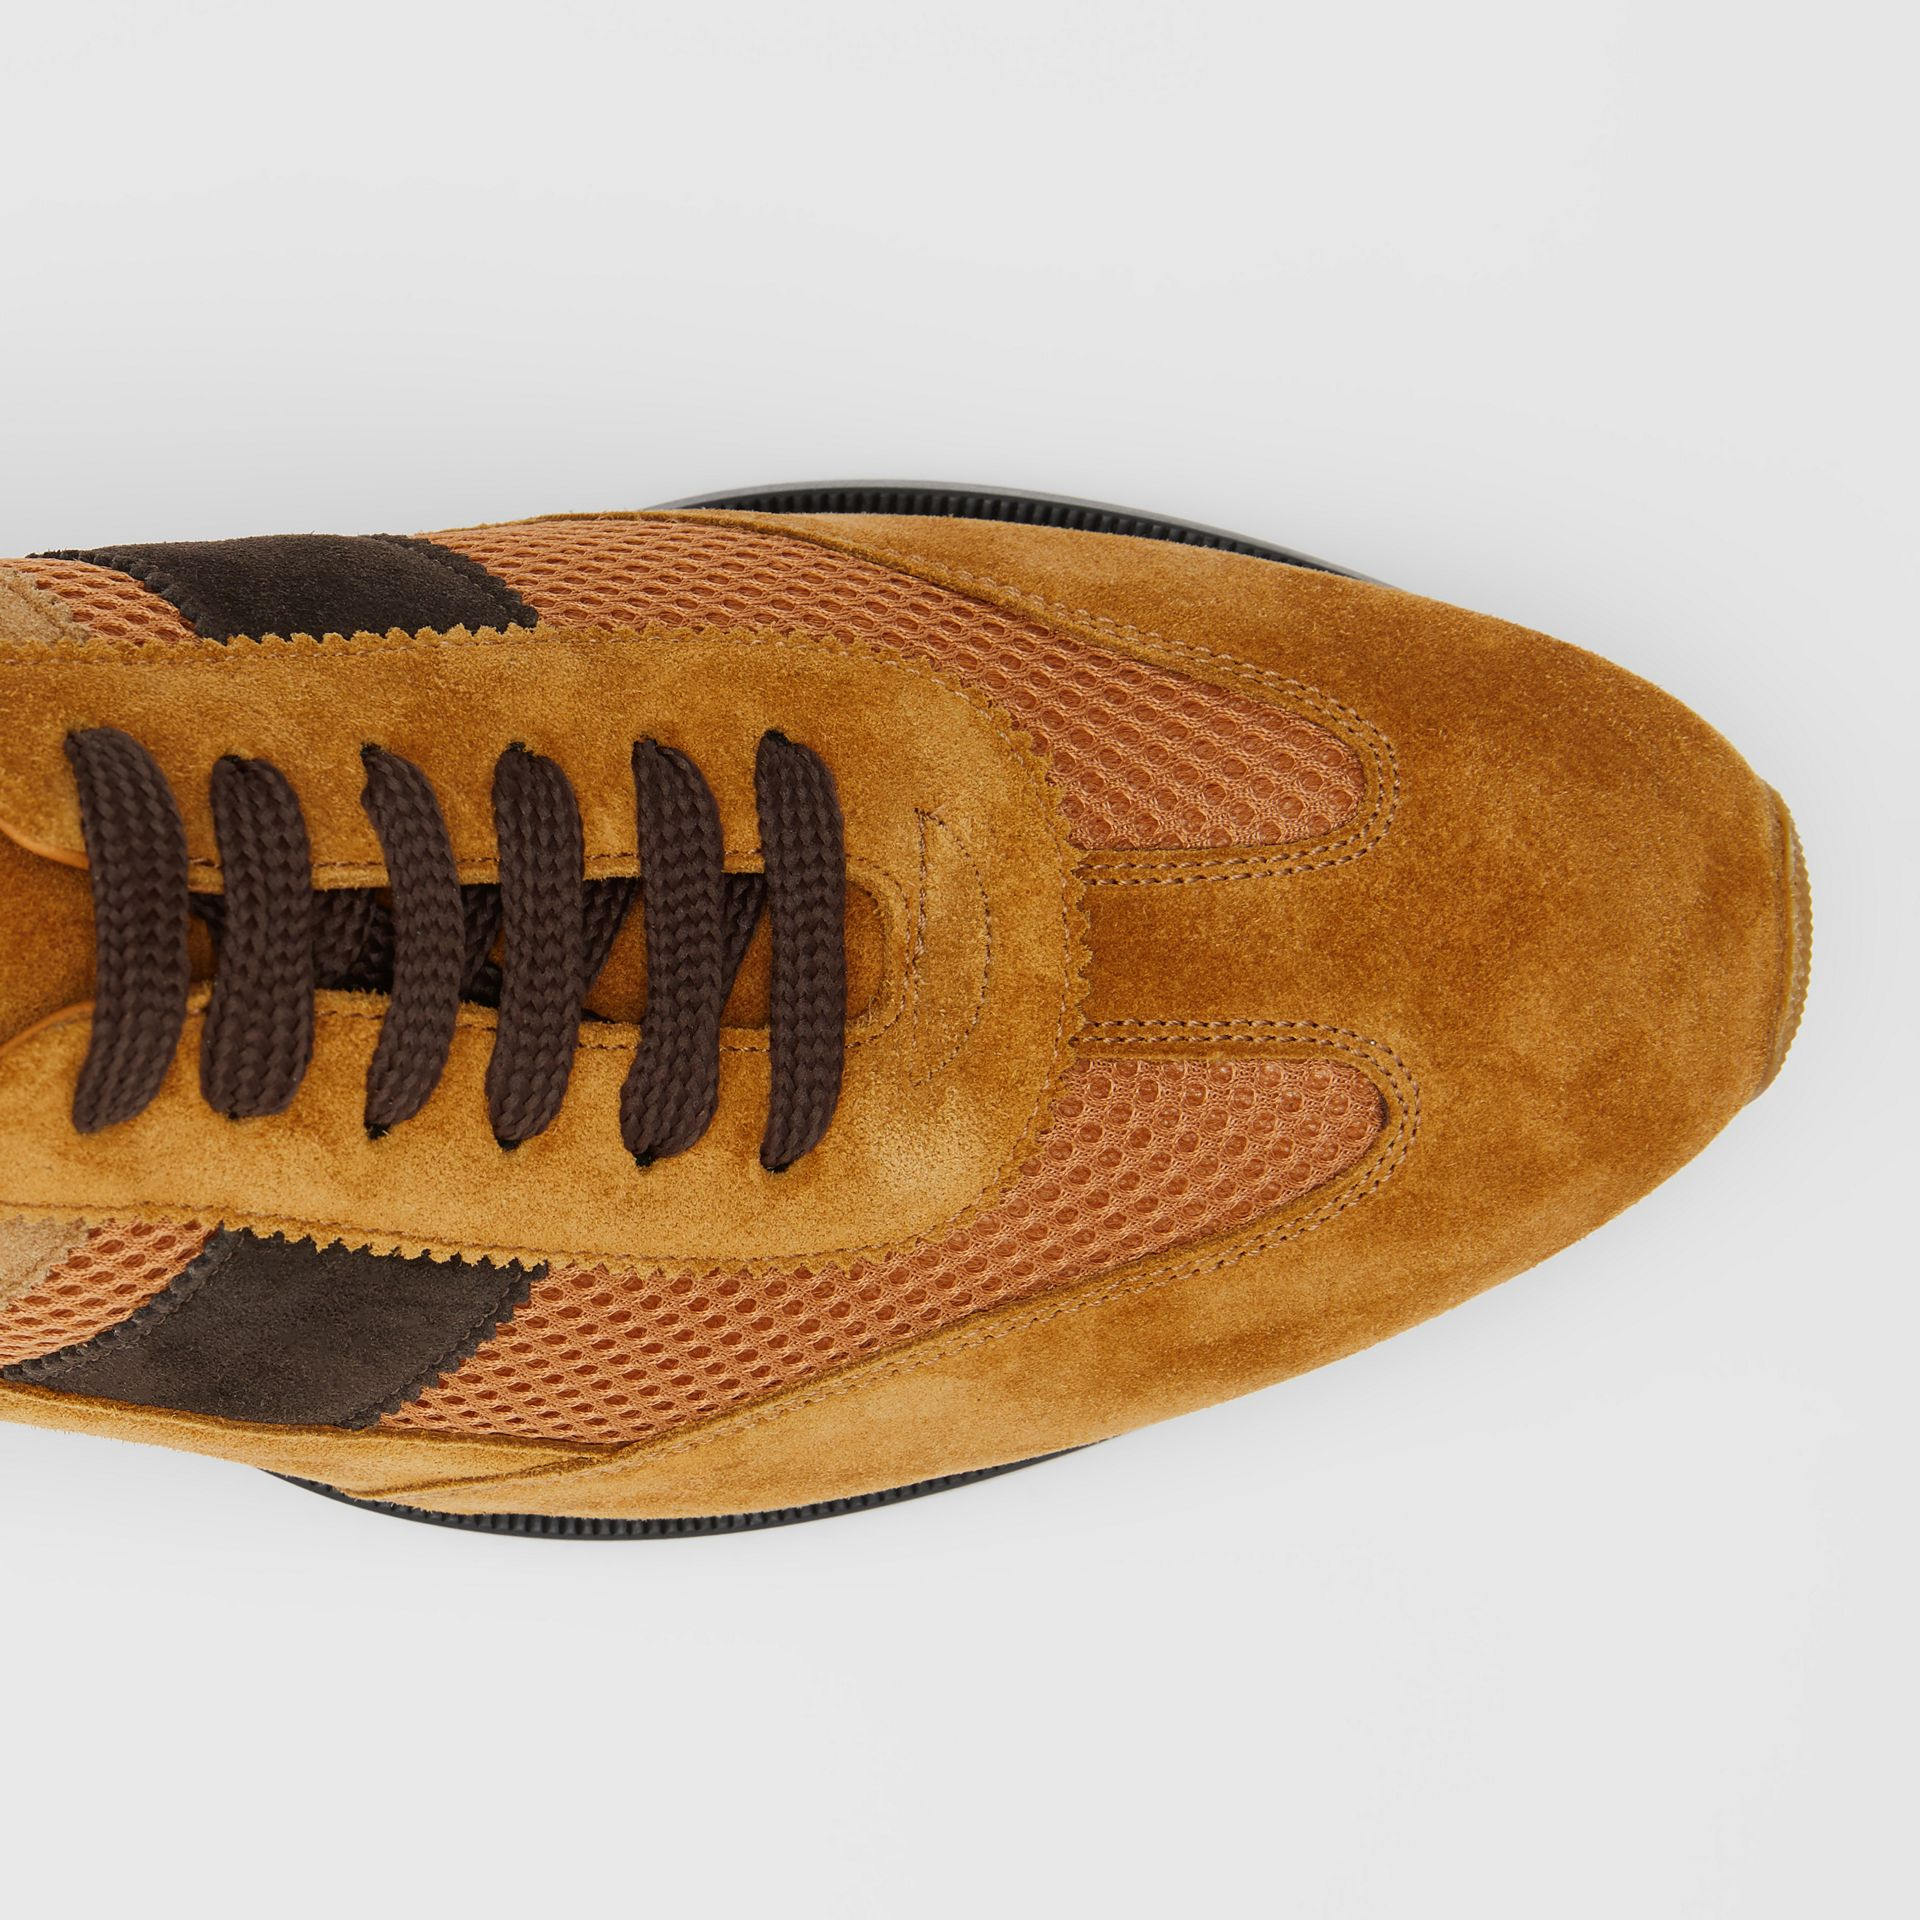 Mesh Panel Suede Lace-up Shoes in Mix Tan - Men | Burberry United States - gallery image 1